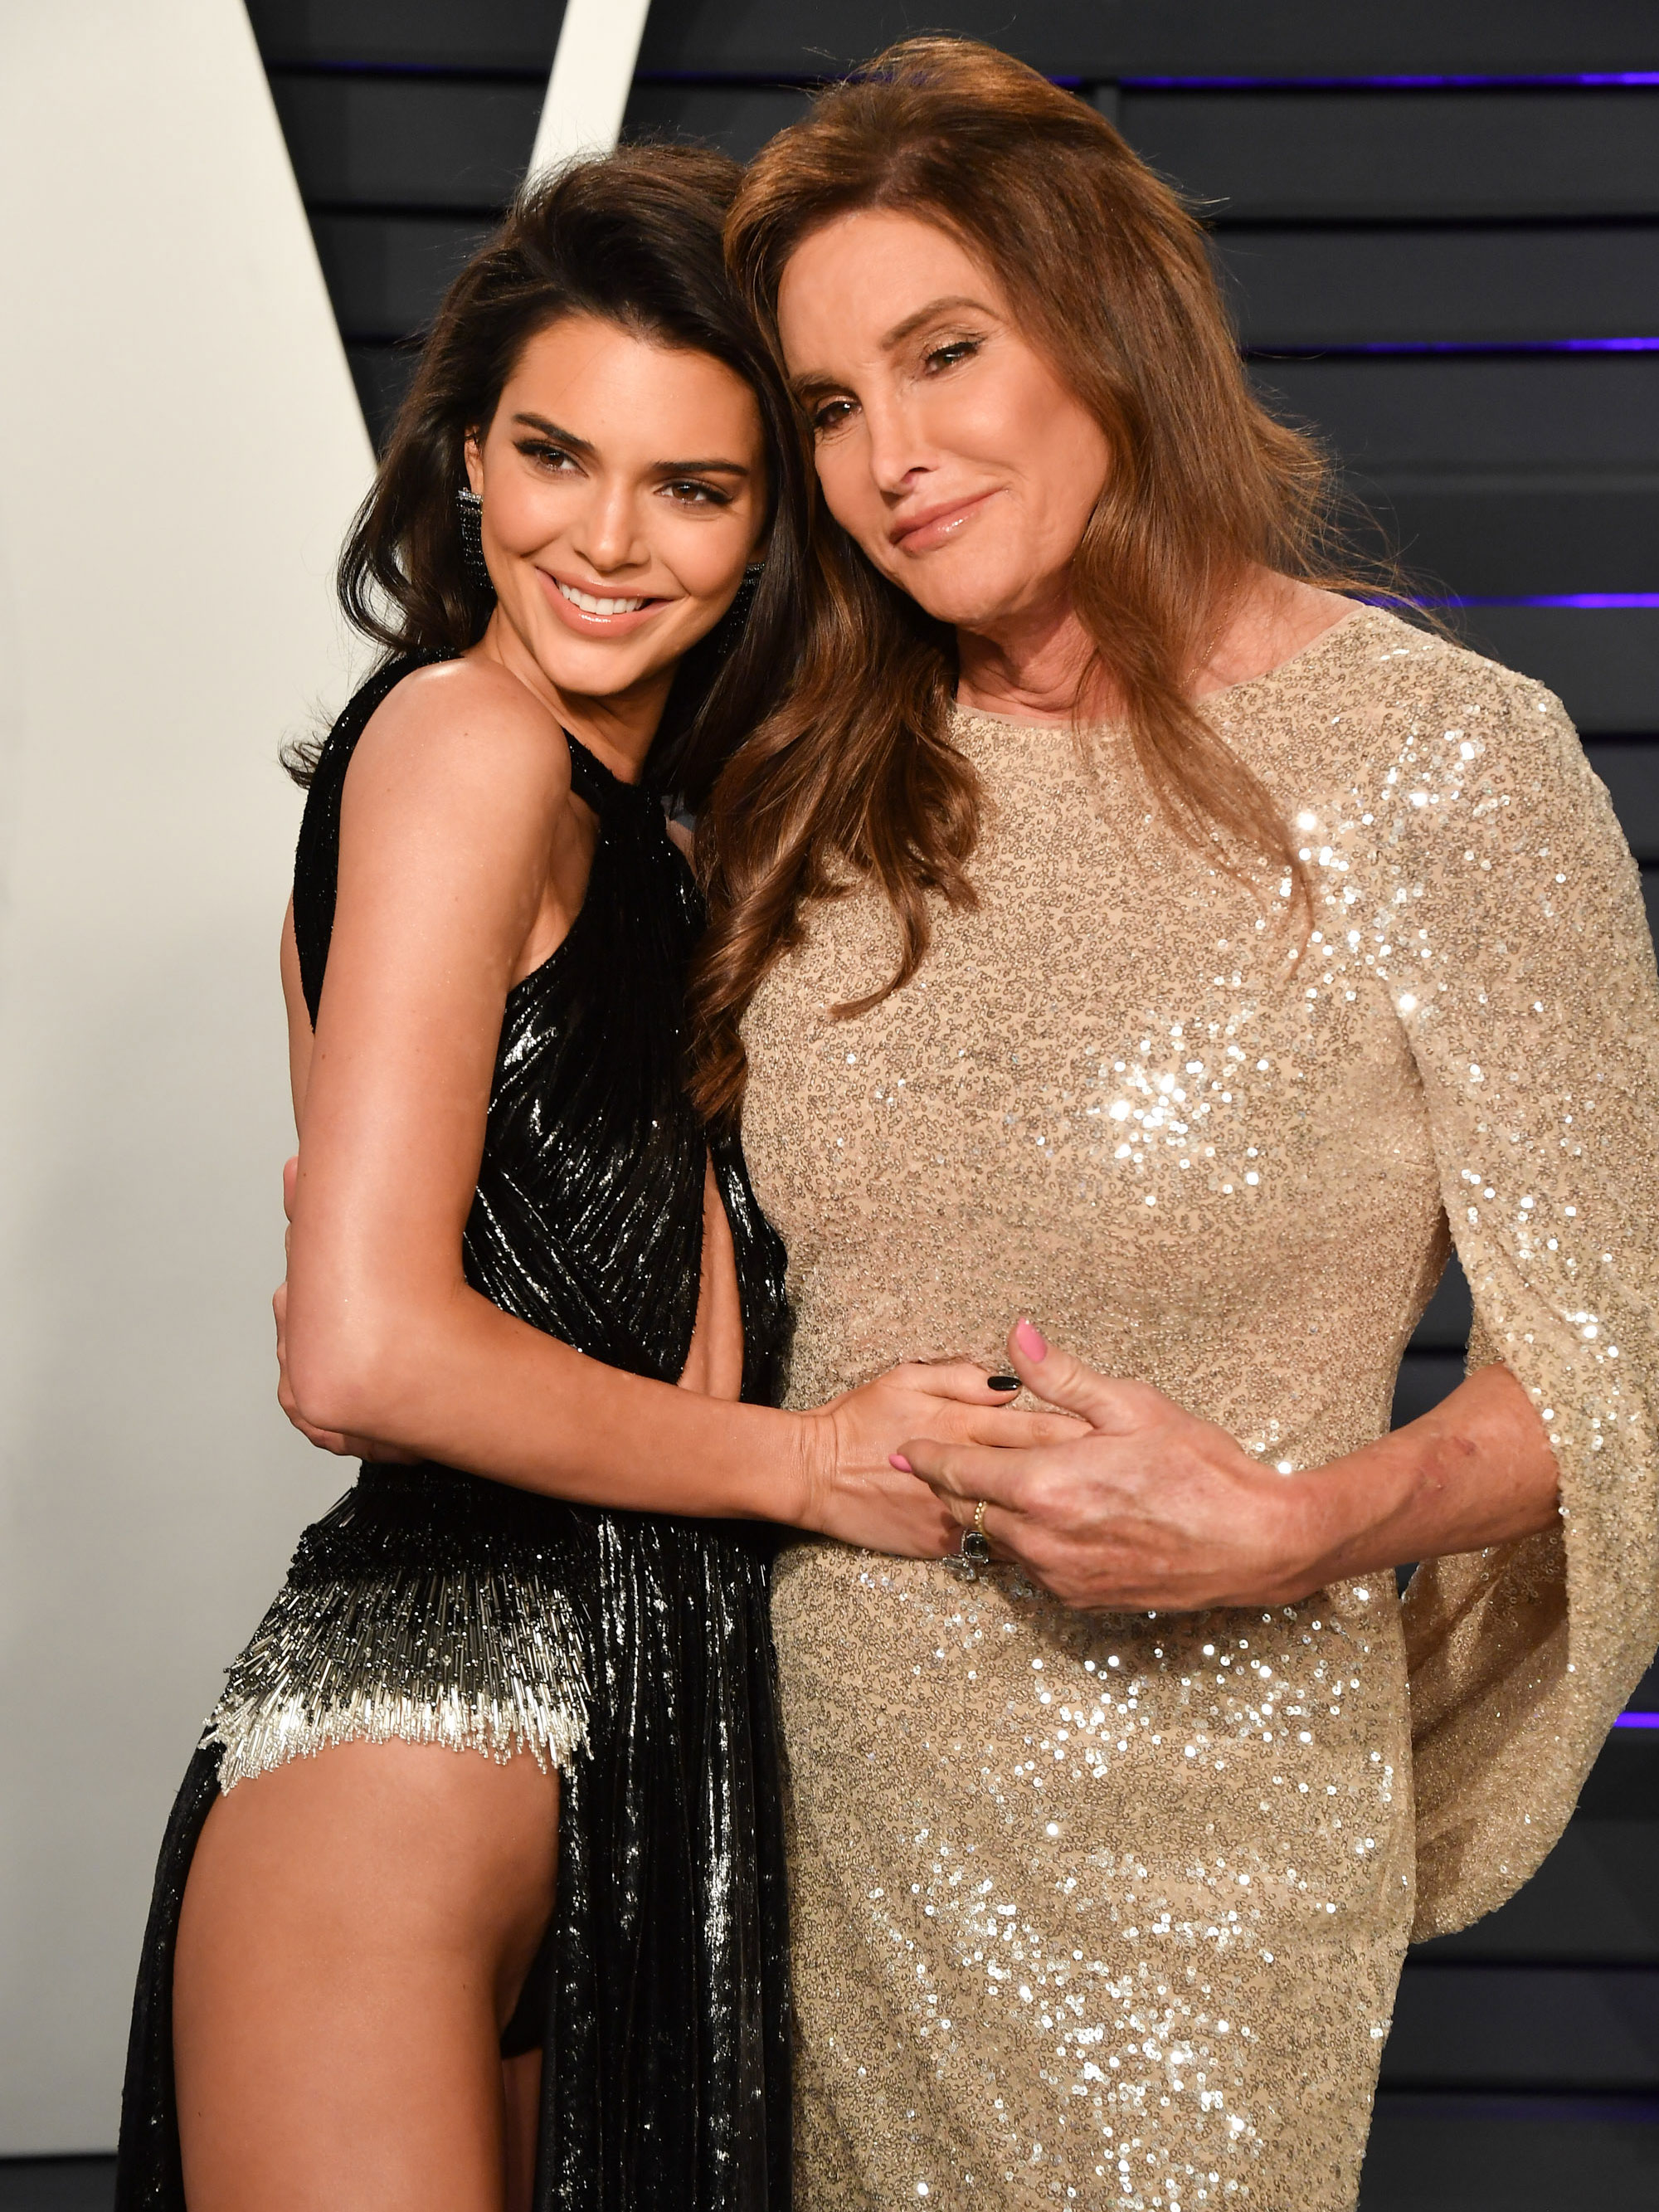 Caitlyn Jenner reveals why her daughters snubbed her I'm A Celeb exit